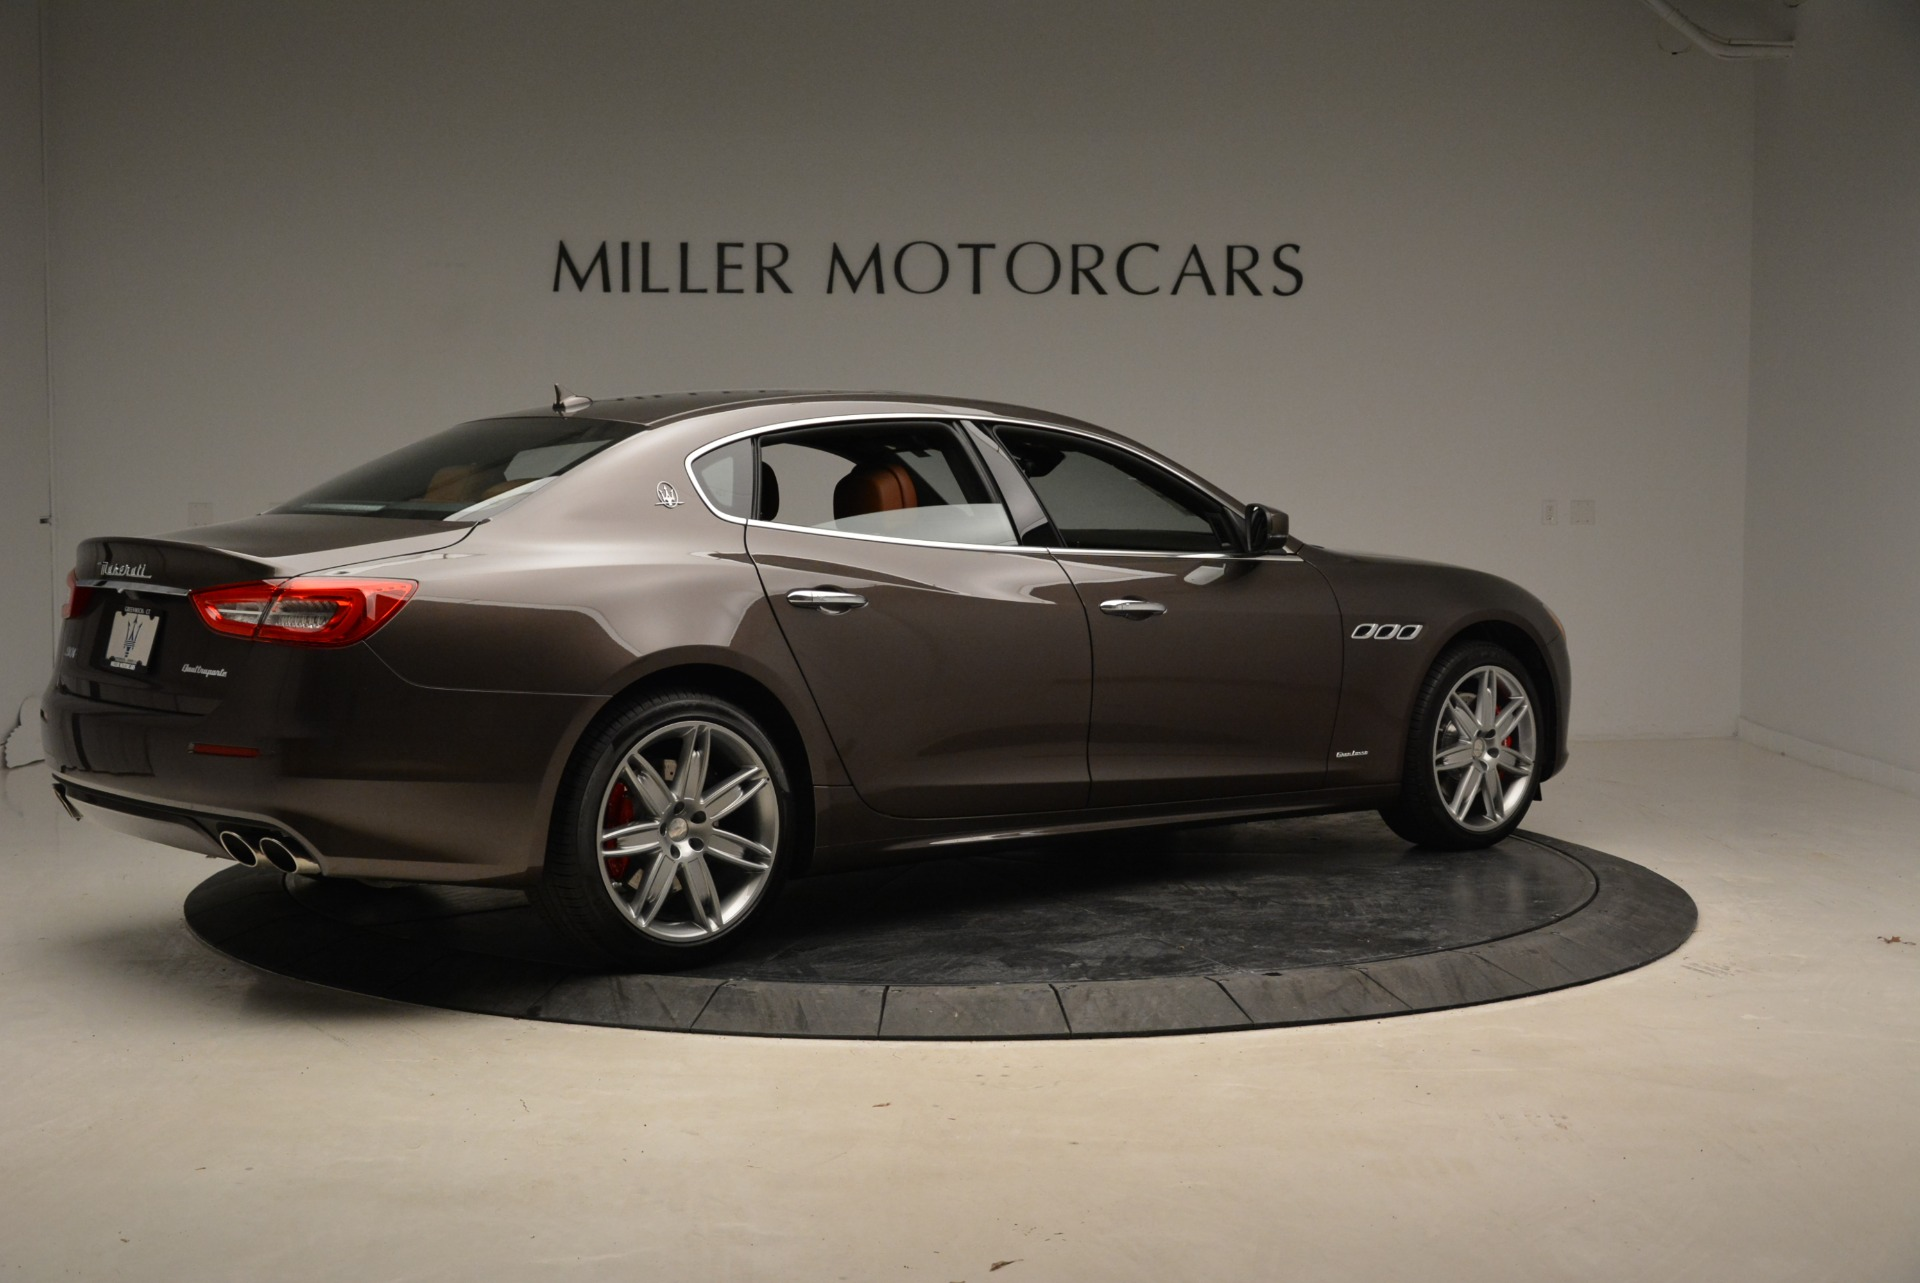 New 2018 Maserati Quattroporte S Q4 GranLusso For Sale In Greenwich, CT 1926_p9